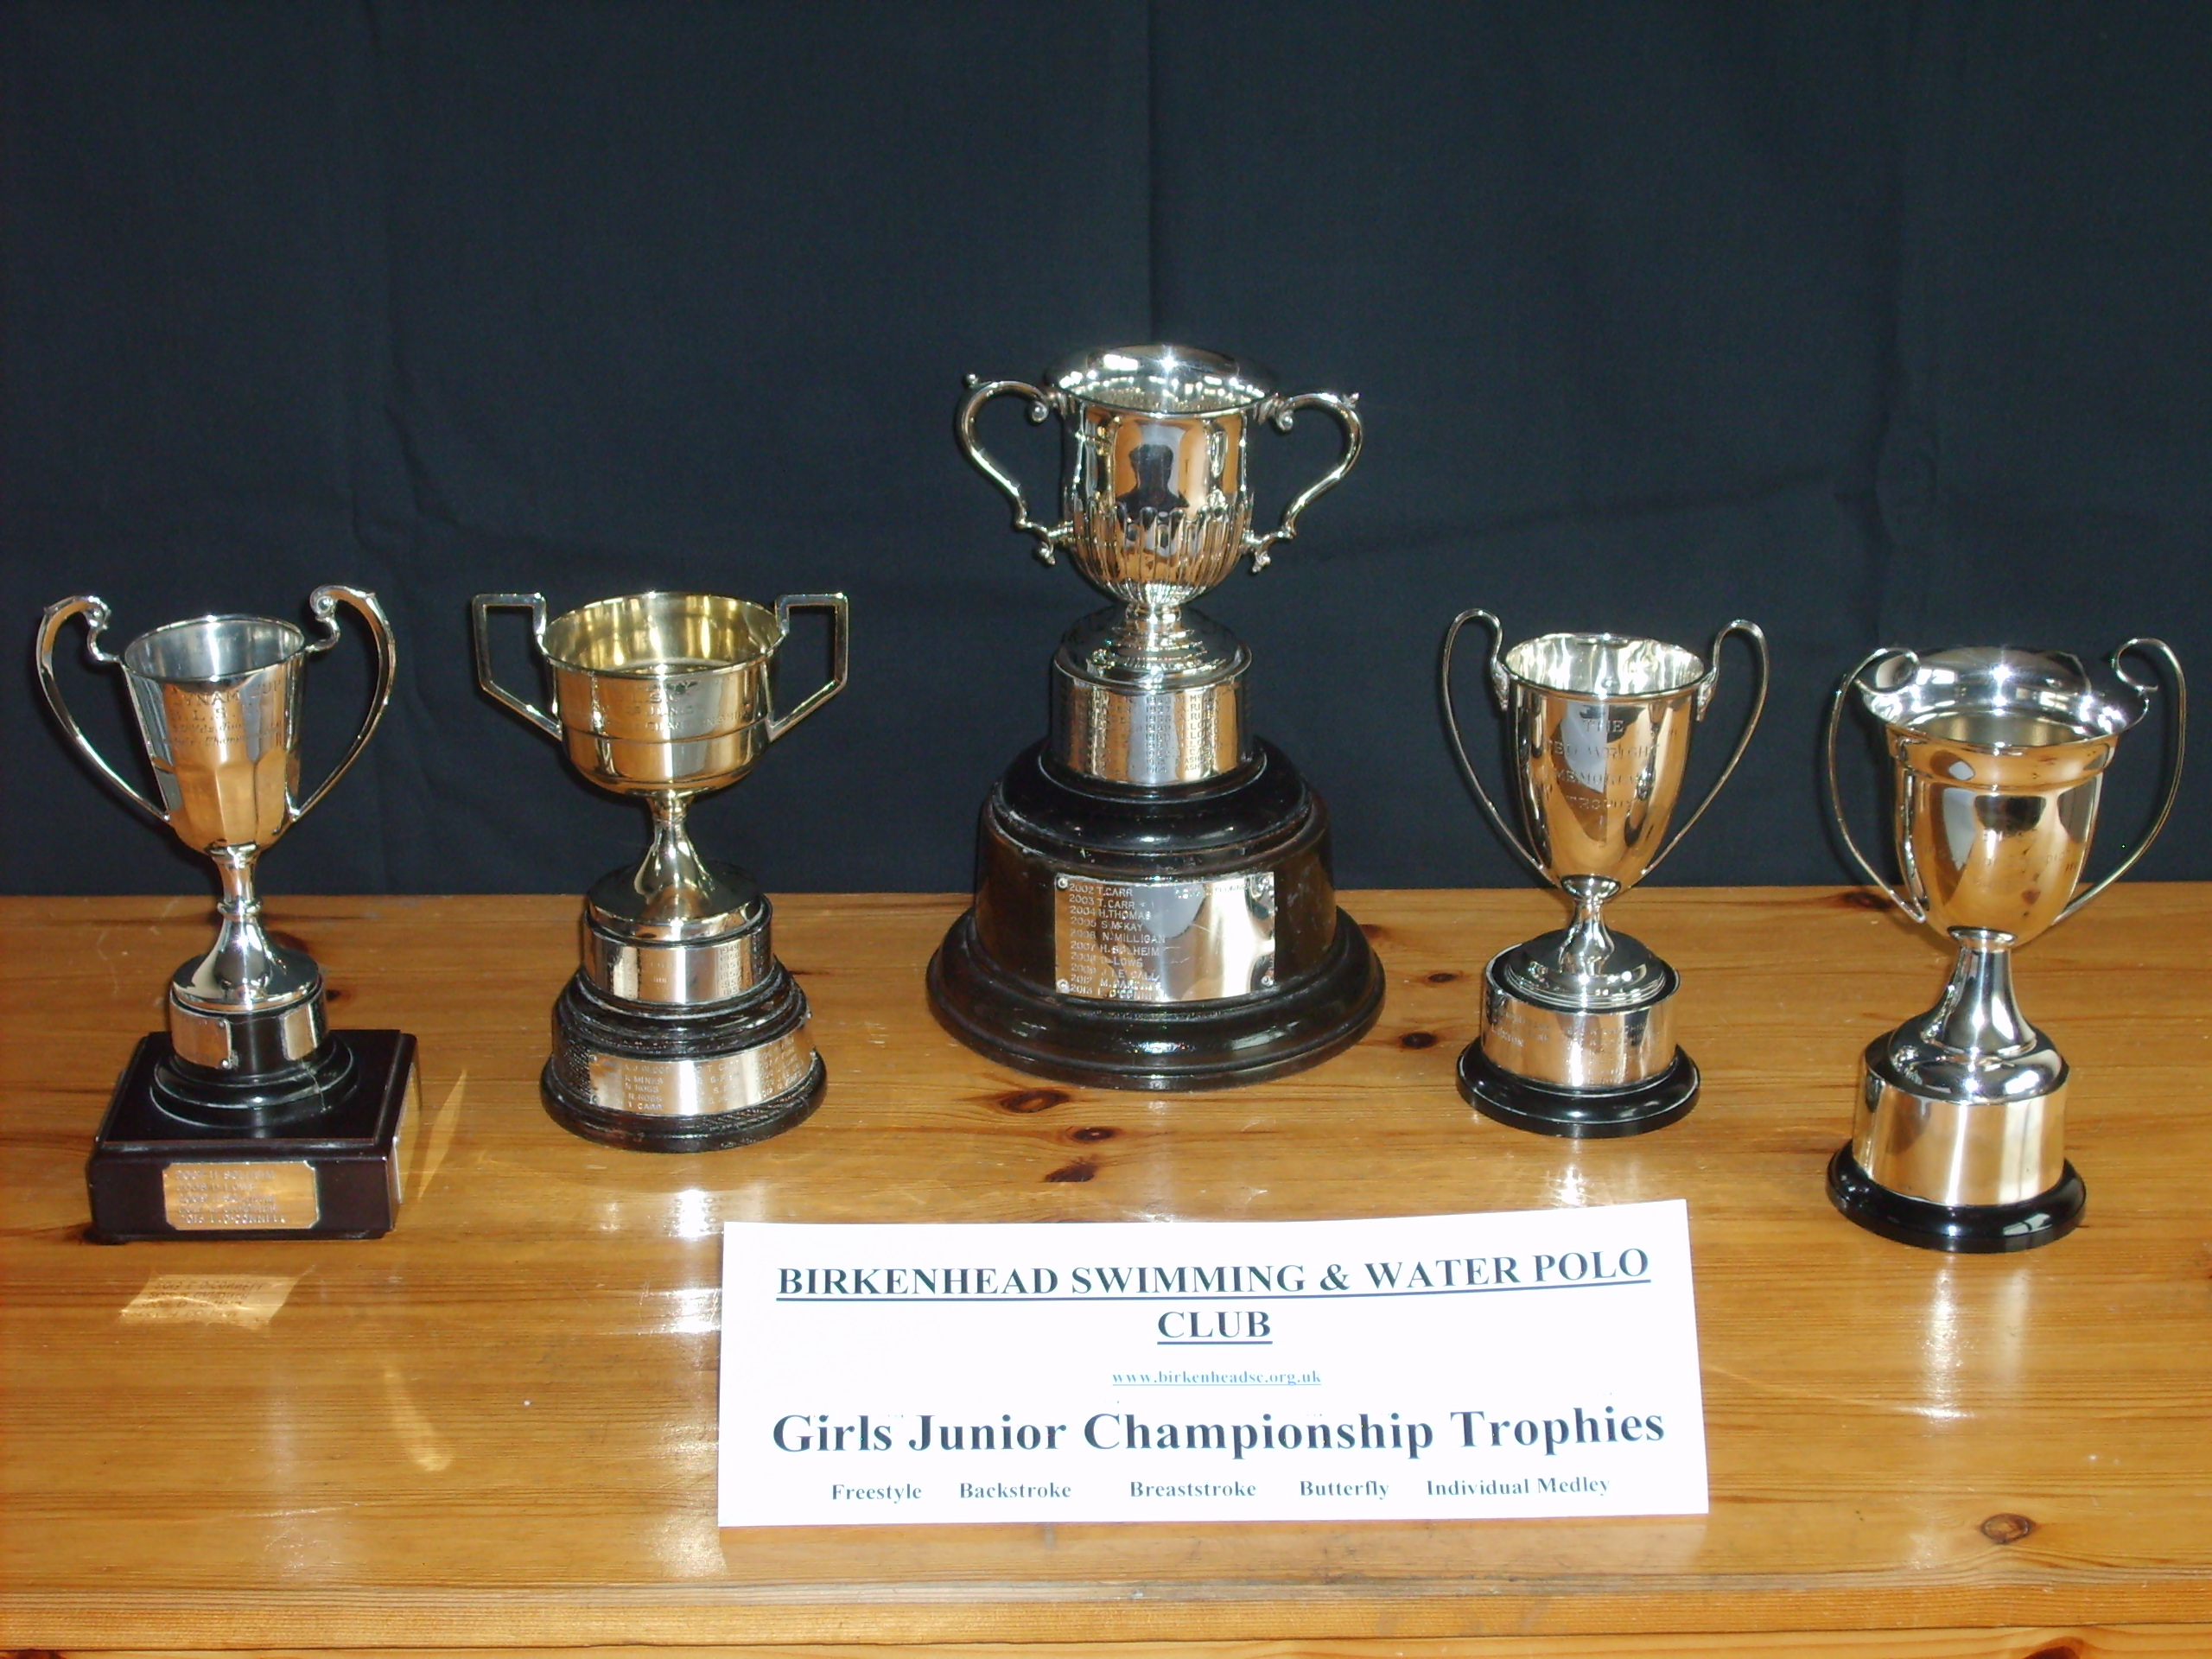 Girls Junior Championship Trophies